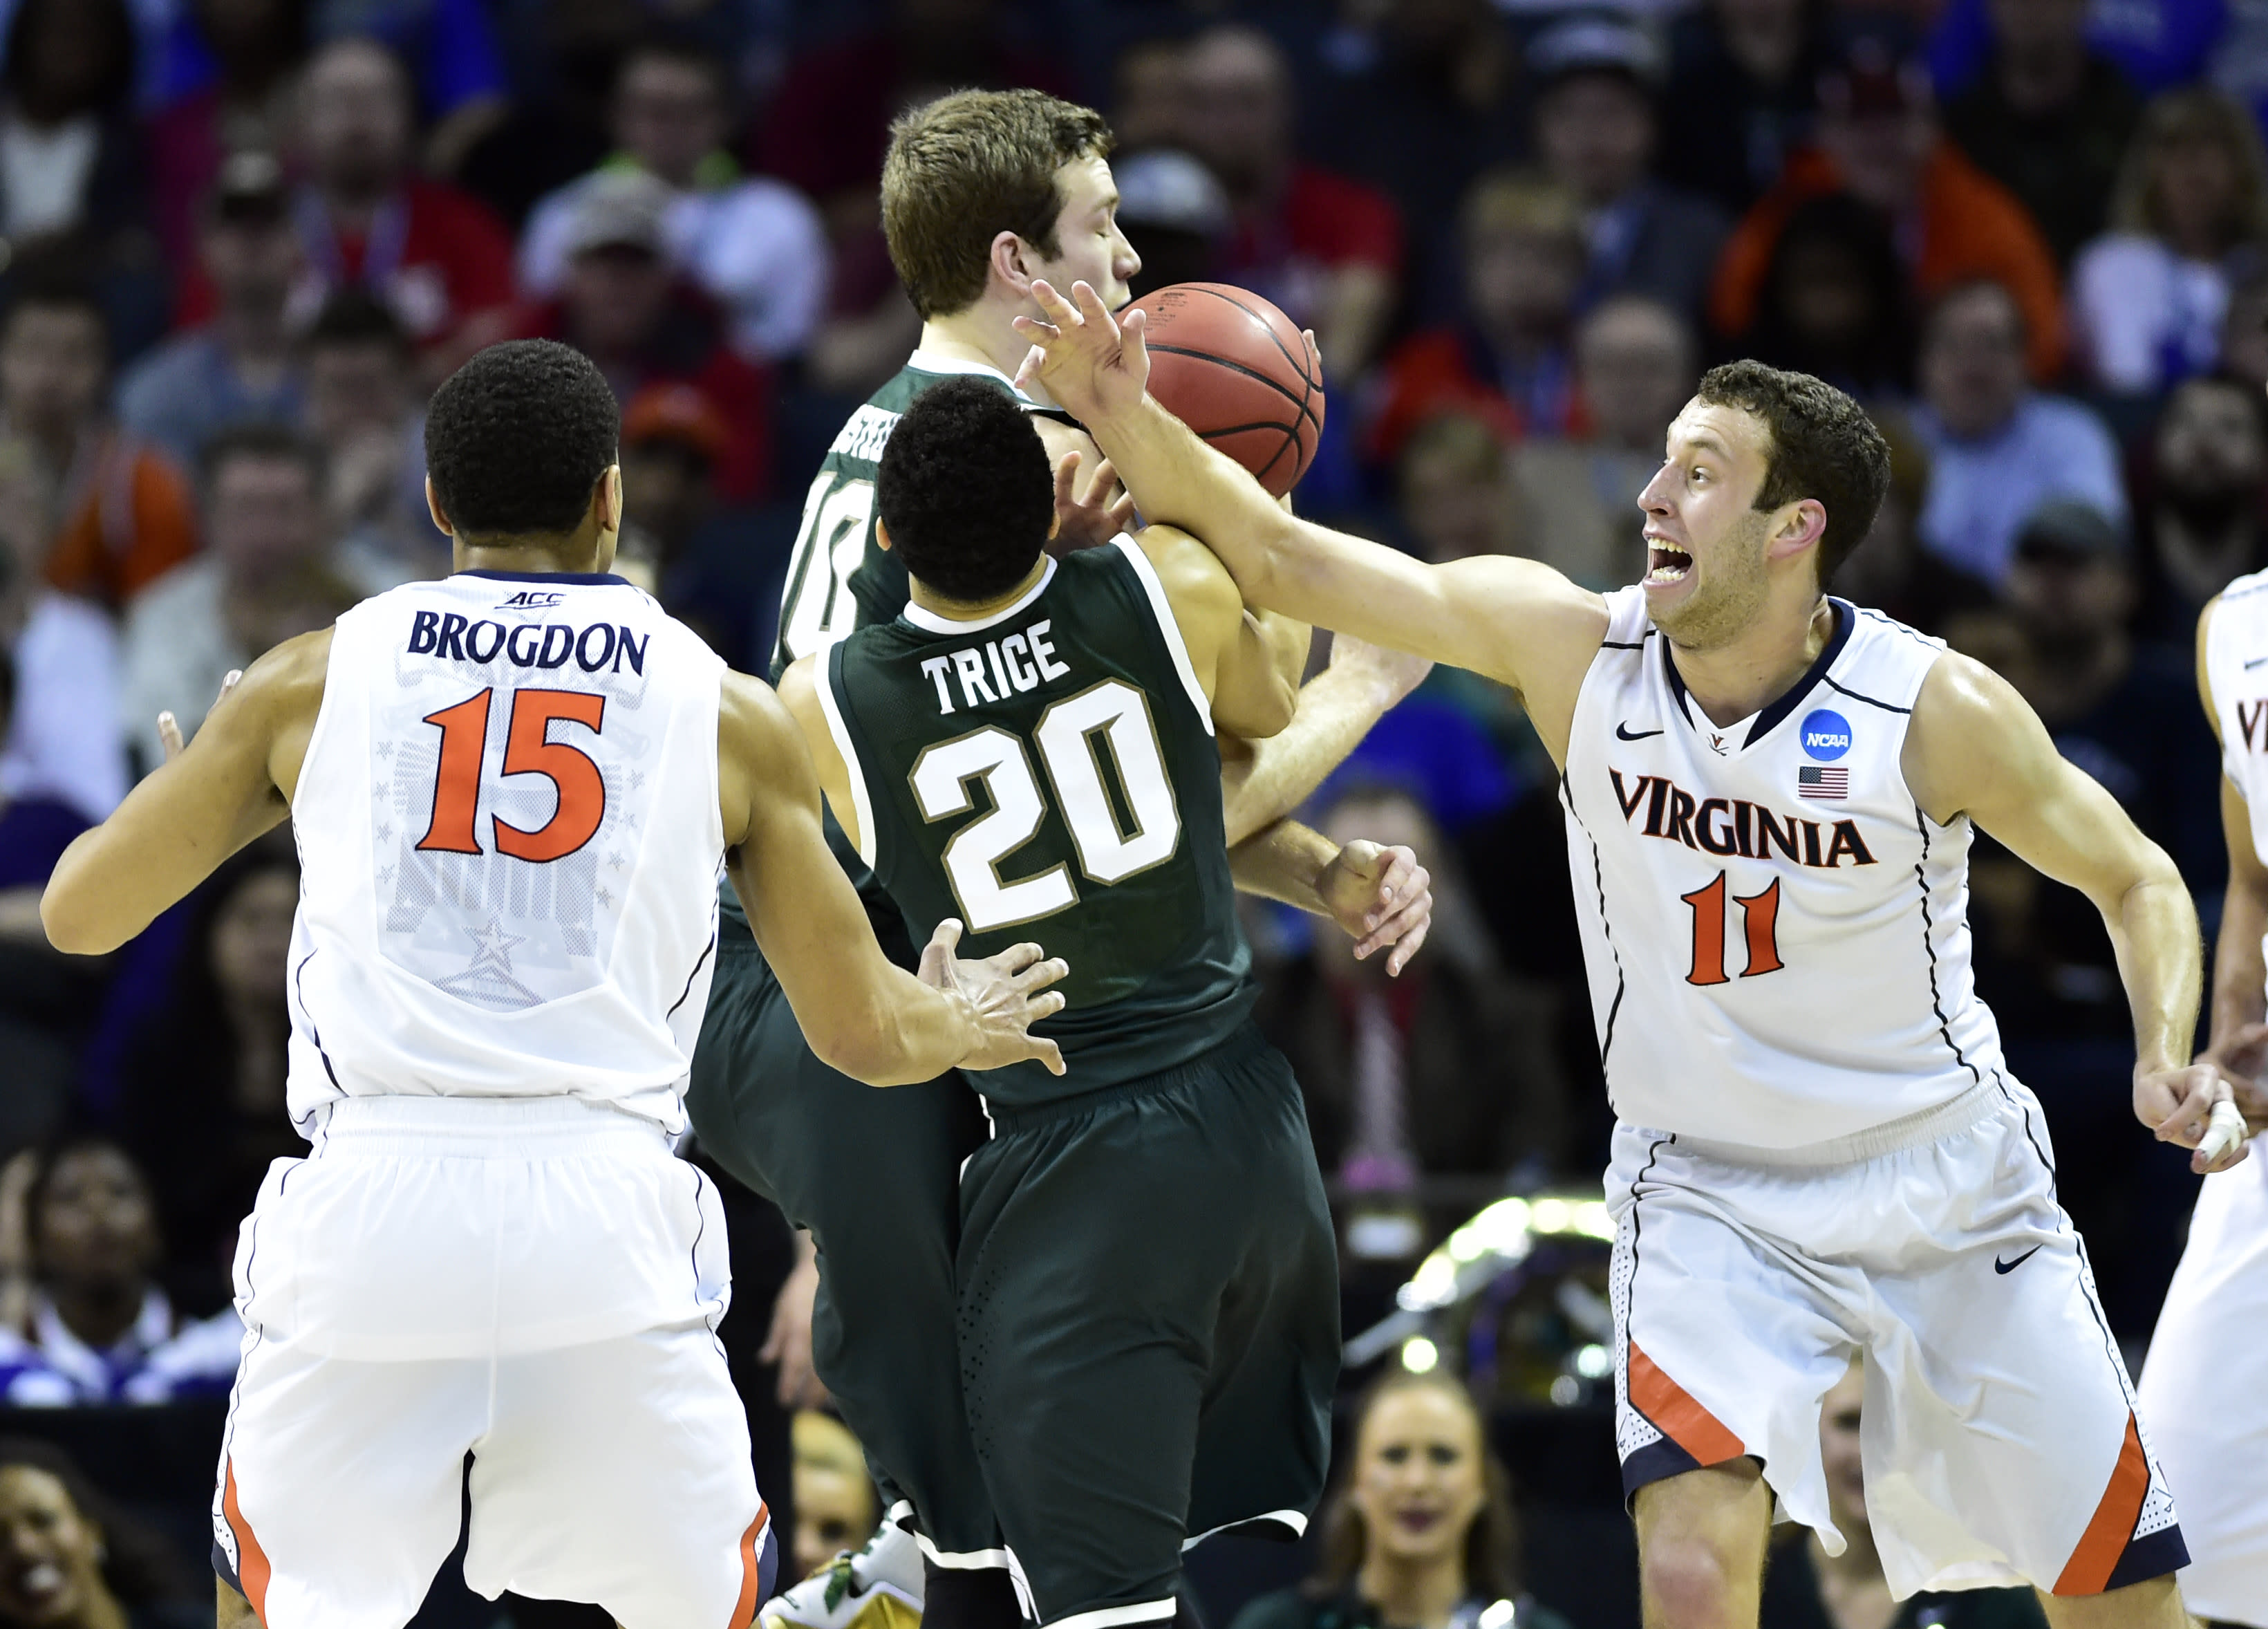 Michigan State ends Virginia's season for a second straight year